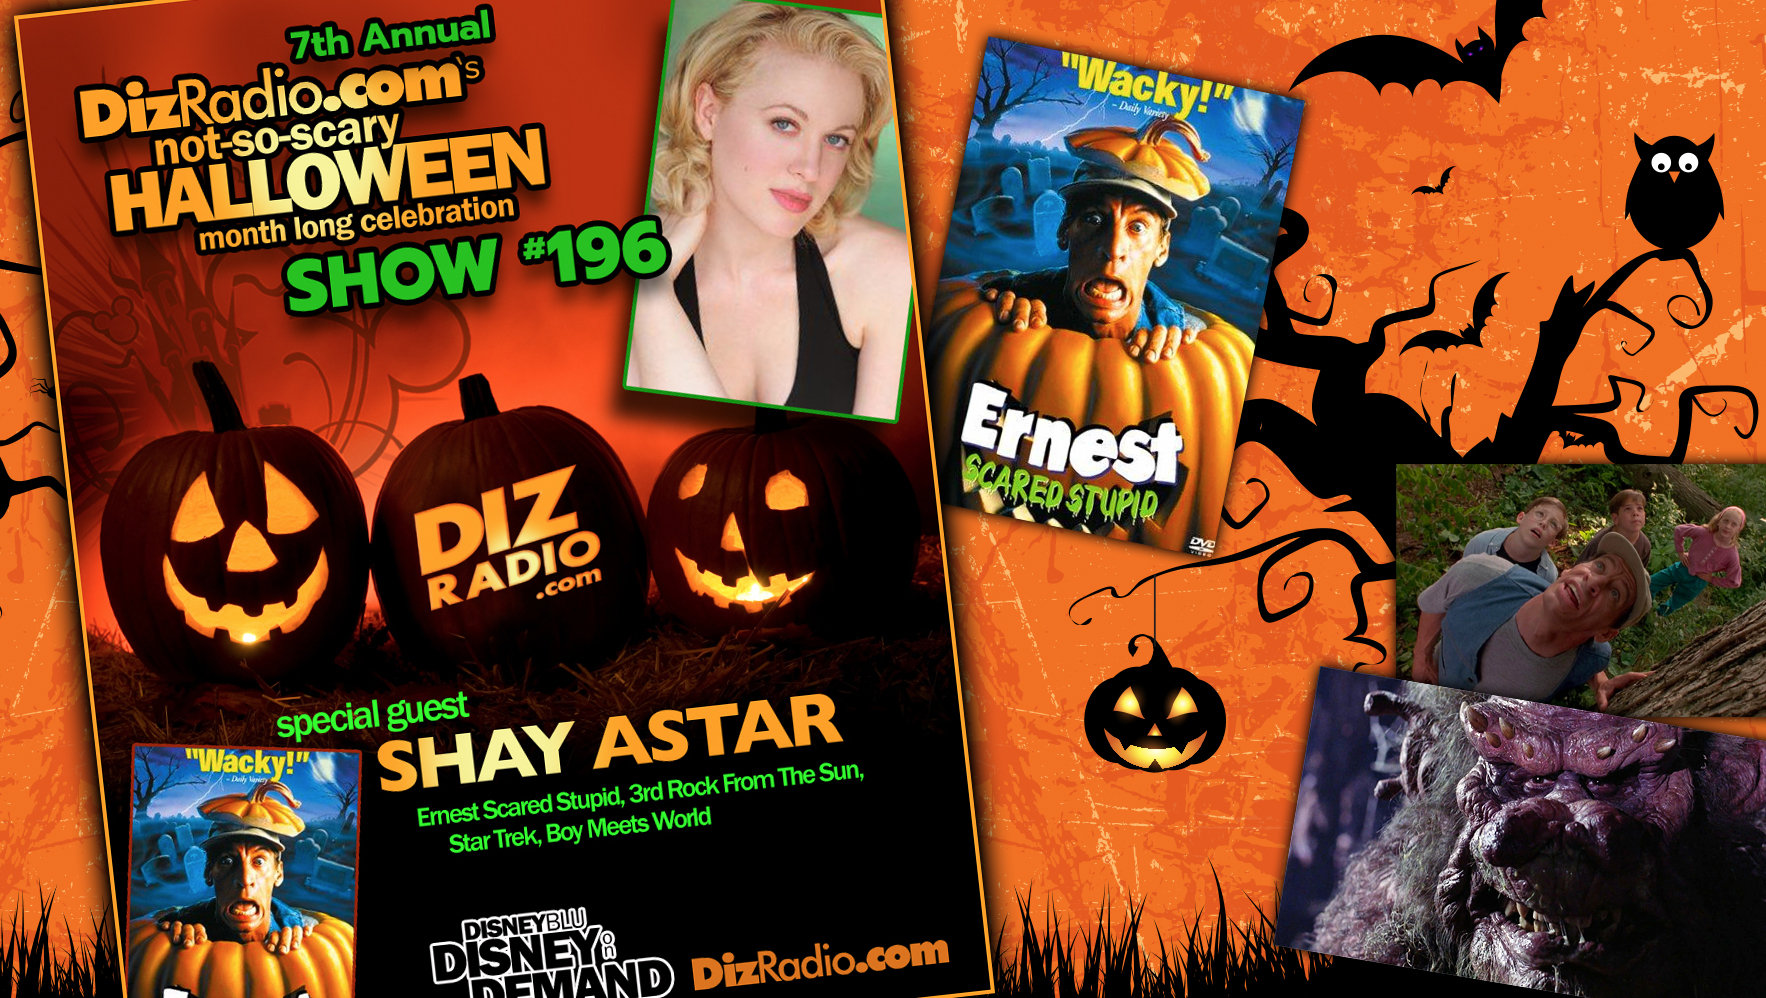 DisneyBlu's DizRadio Disney on Demand Podcast Show #196 w/ Guest SHAY ASTAR (Ernest Scared Stupid, 3rd Rock from the Sun, Star Trek, Boy Meets World, Musician, Songwriter)